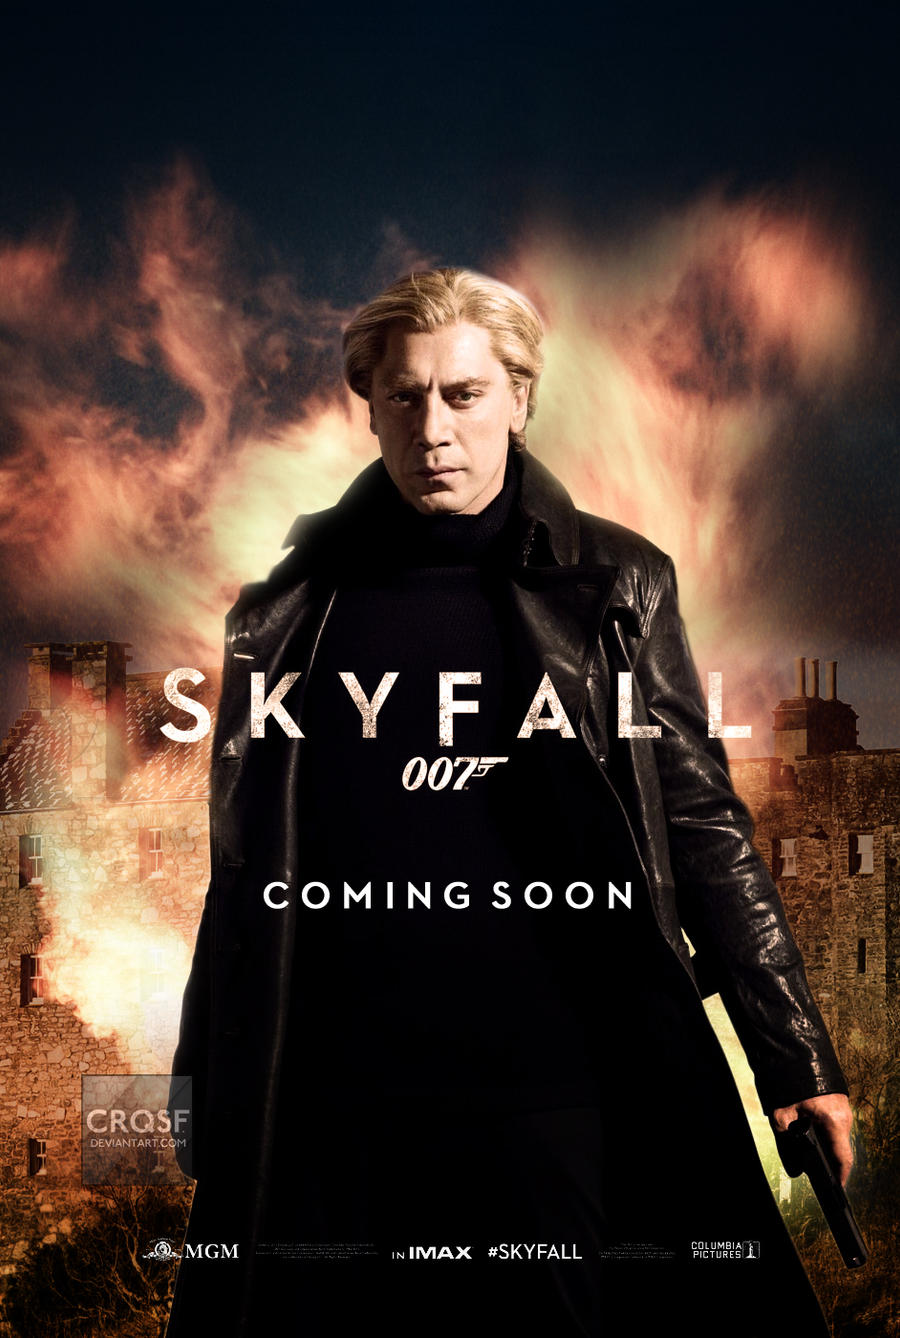 Skyfall fan Silva poster by crqsf